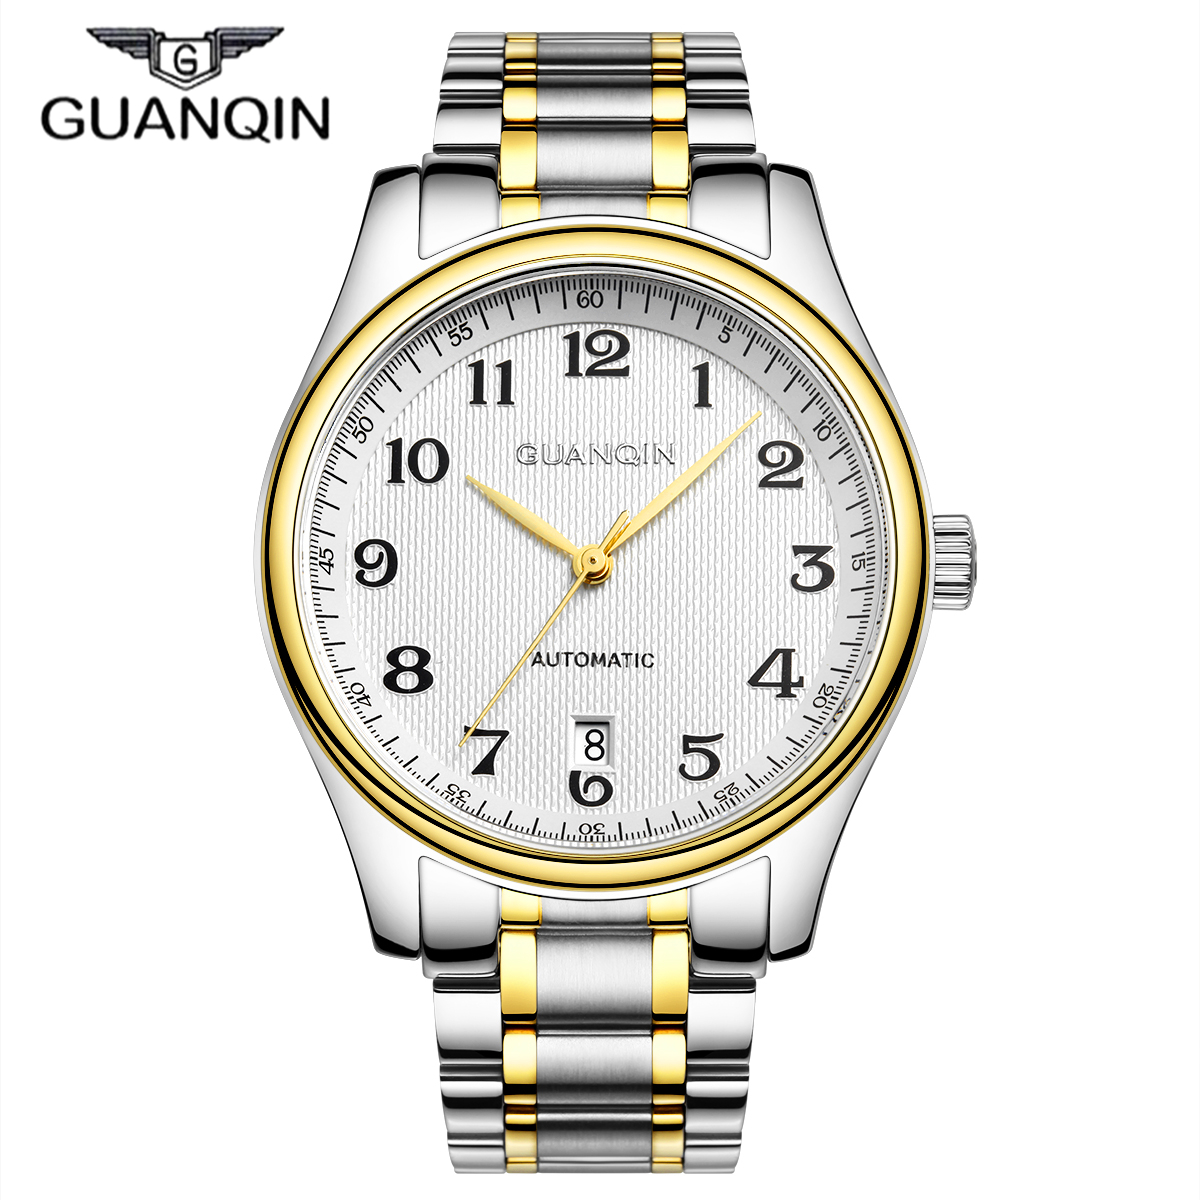 ФОТО Mechanical Watches Relogio Masculino 2016 GUANQIN Men Business Watch Stainless Steel Waterproof Brand Watches reloj hombre